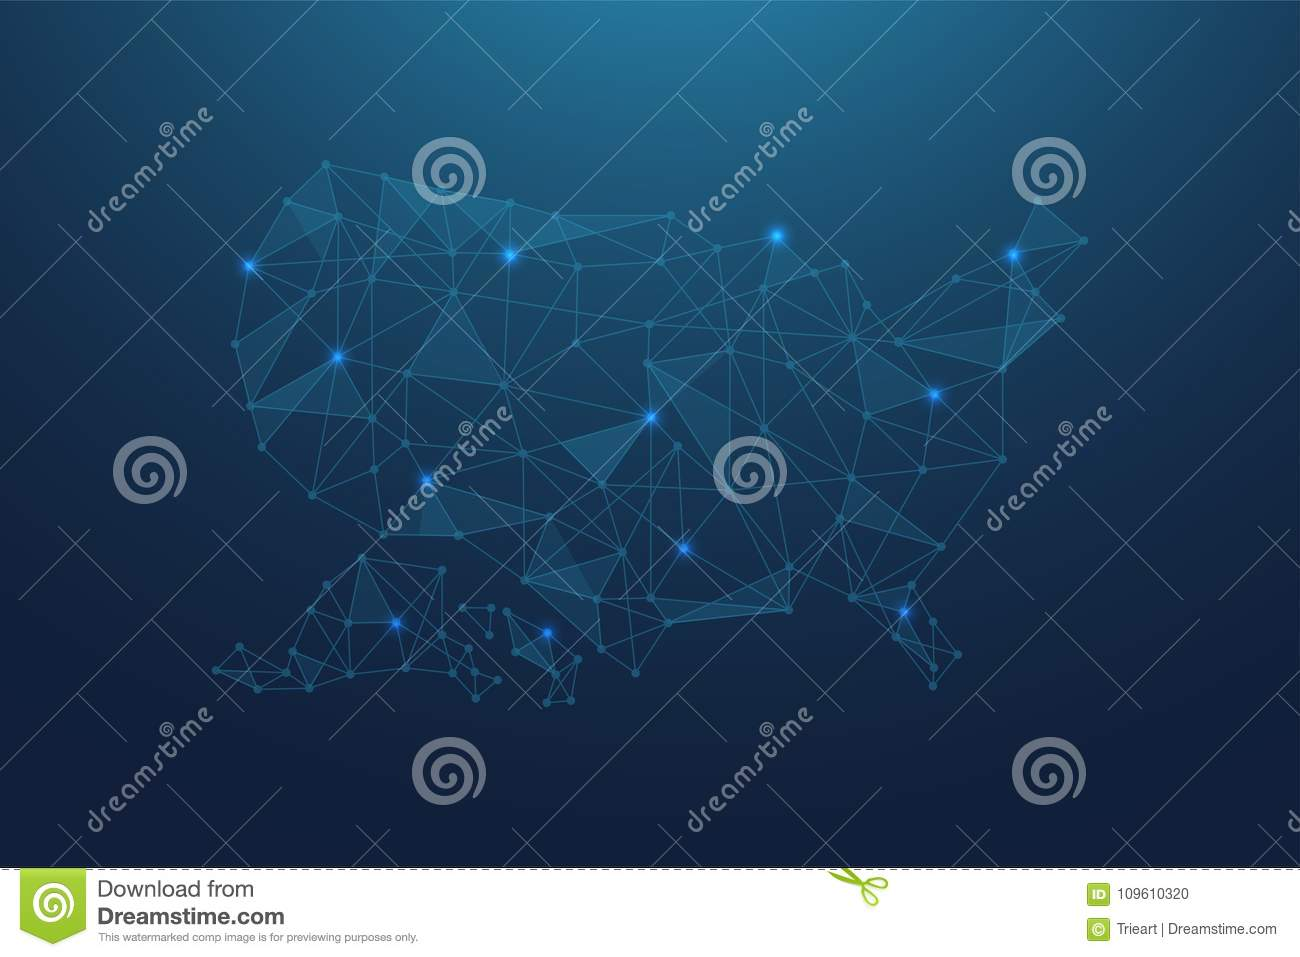 Abstract USA map with Blue Polygonal Space Background with Connecting Lines